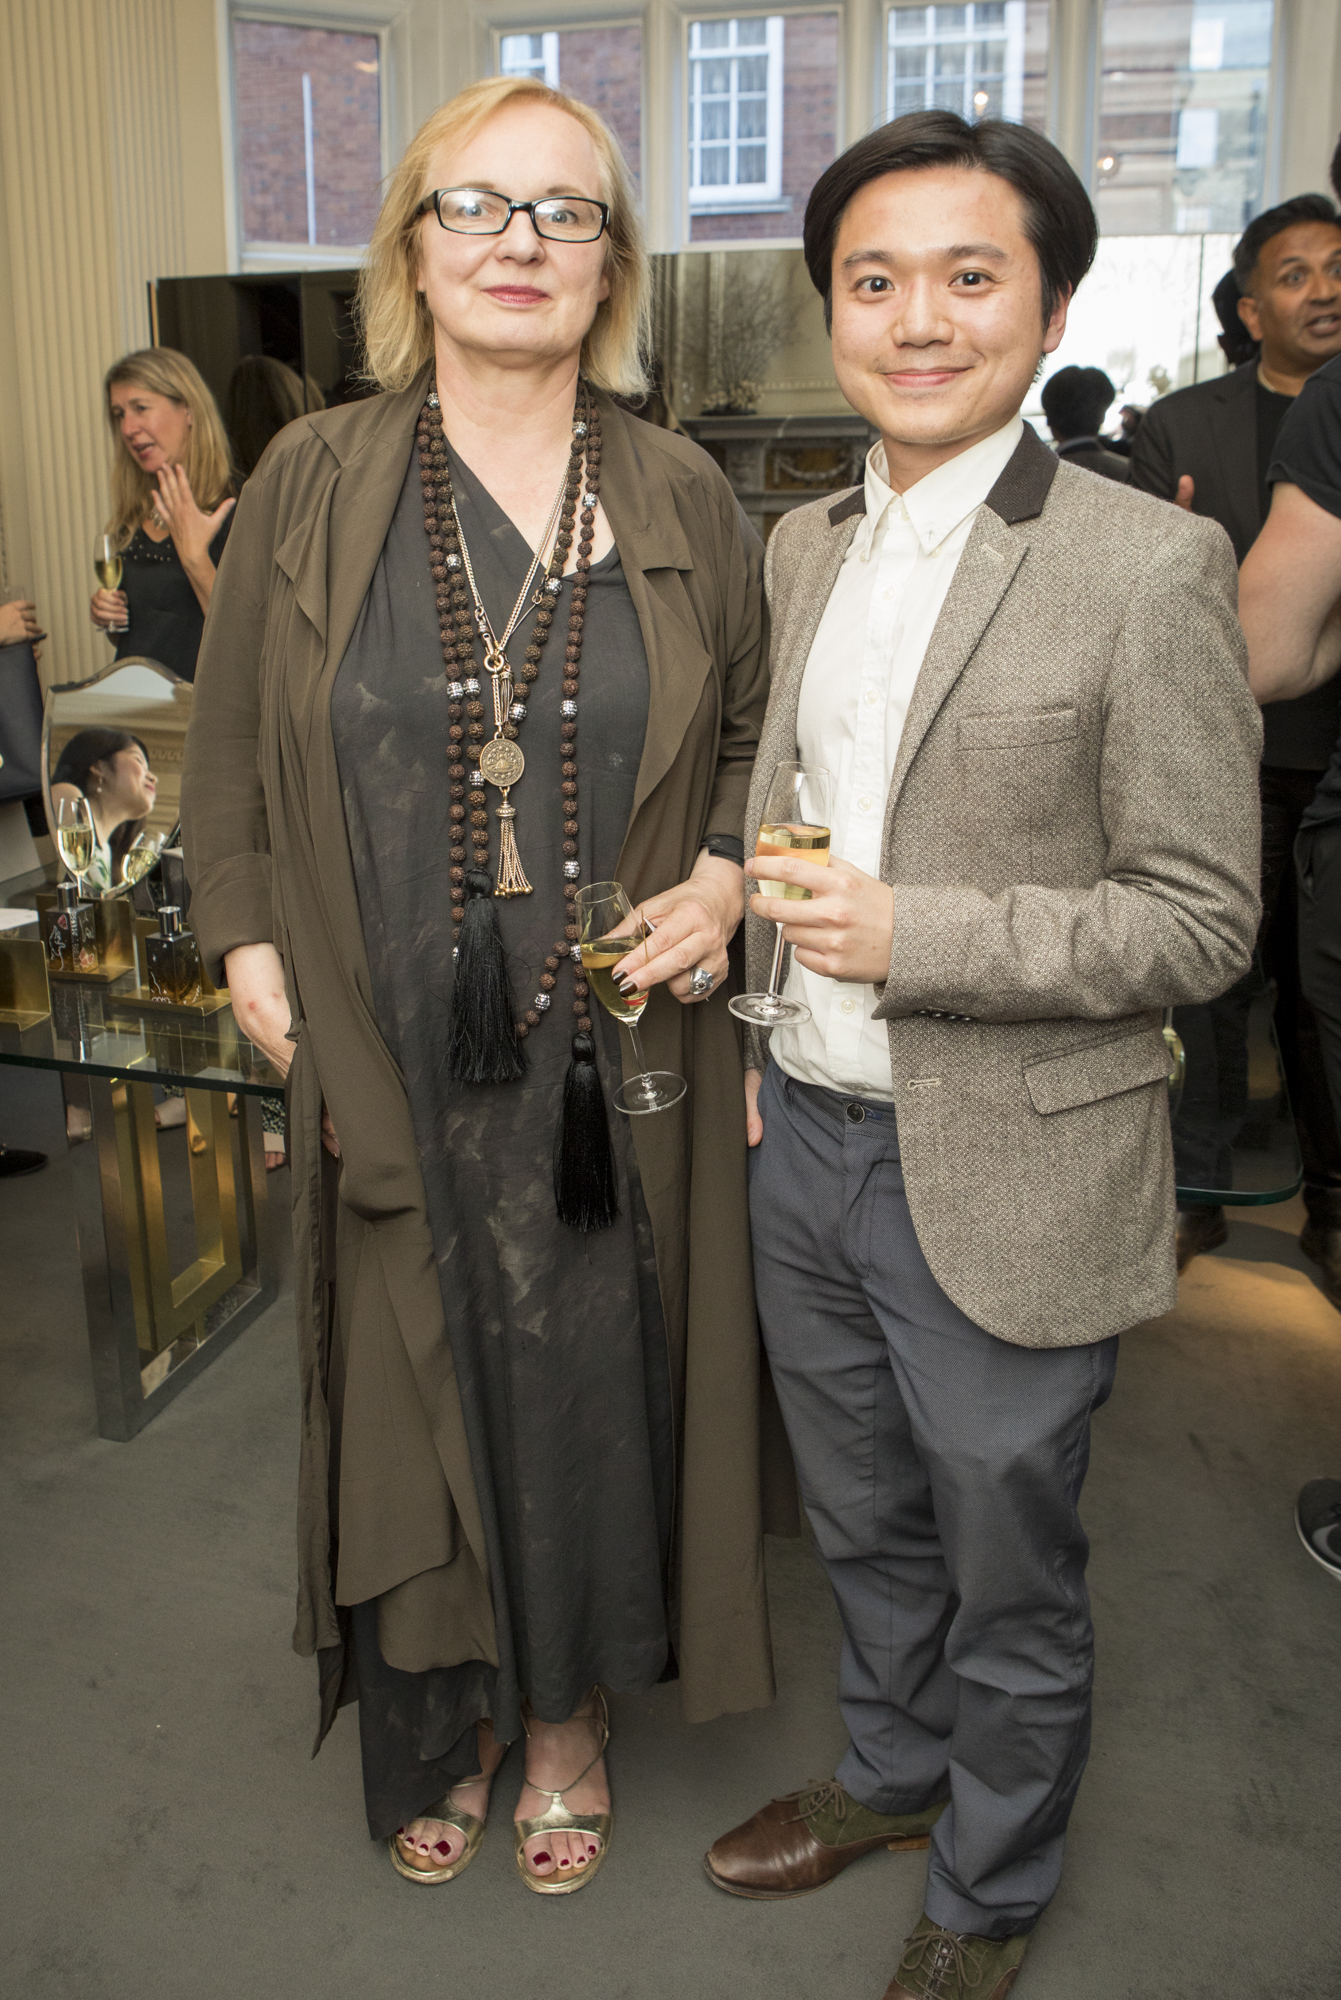 Brigitte Stepputtis - Head of Couture, Vivienne Westwood; Andre Wang - CEO, FavourUp